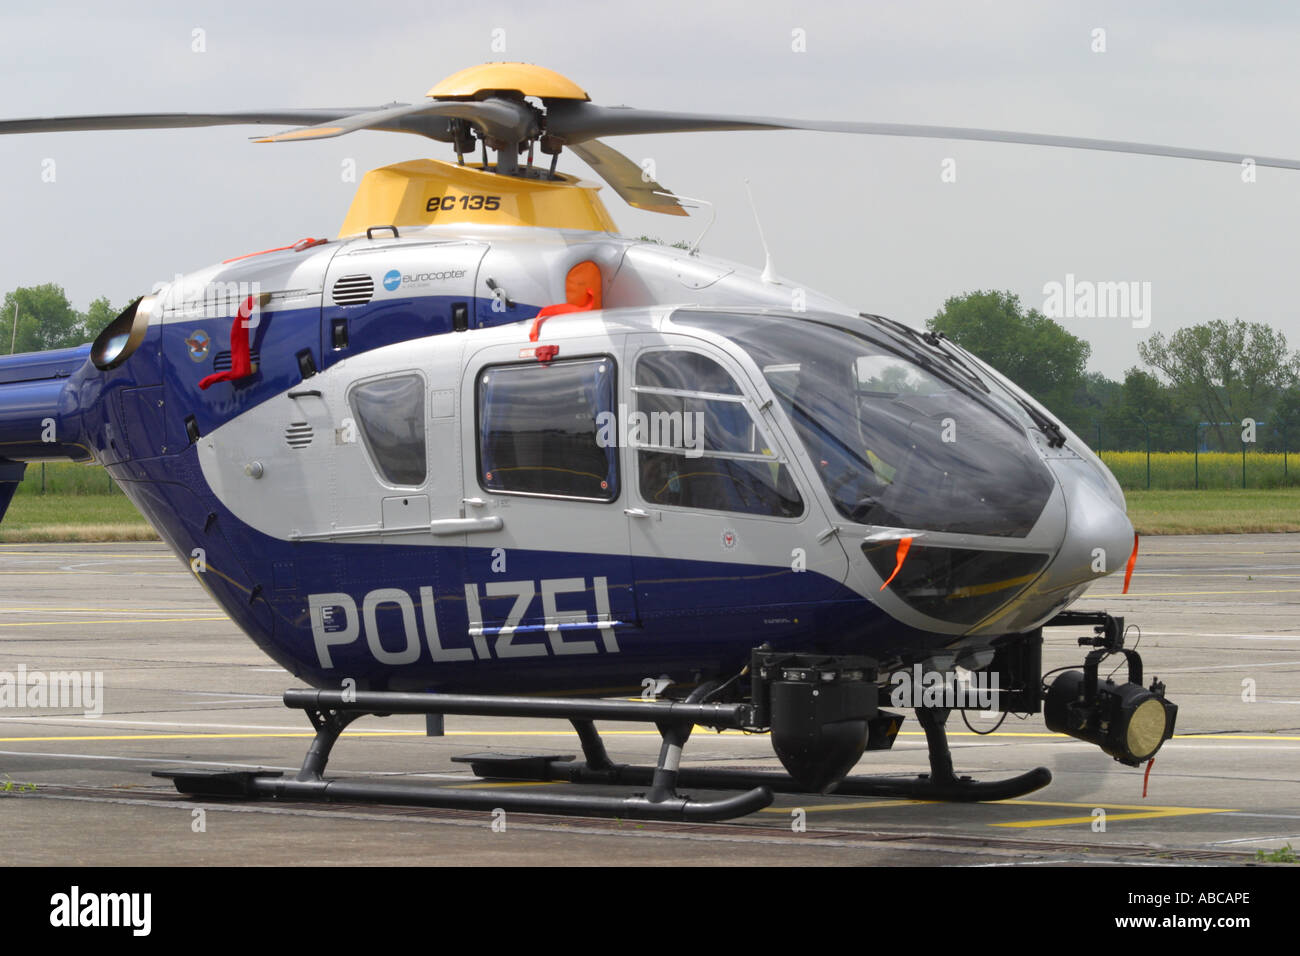 German Police Polizei Eurocopter EC-135 observation and patrol helicopter - Stock Image